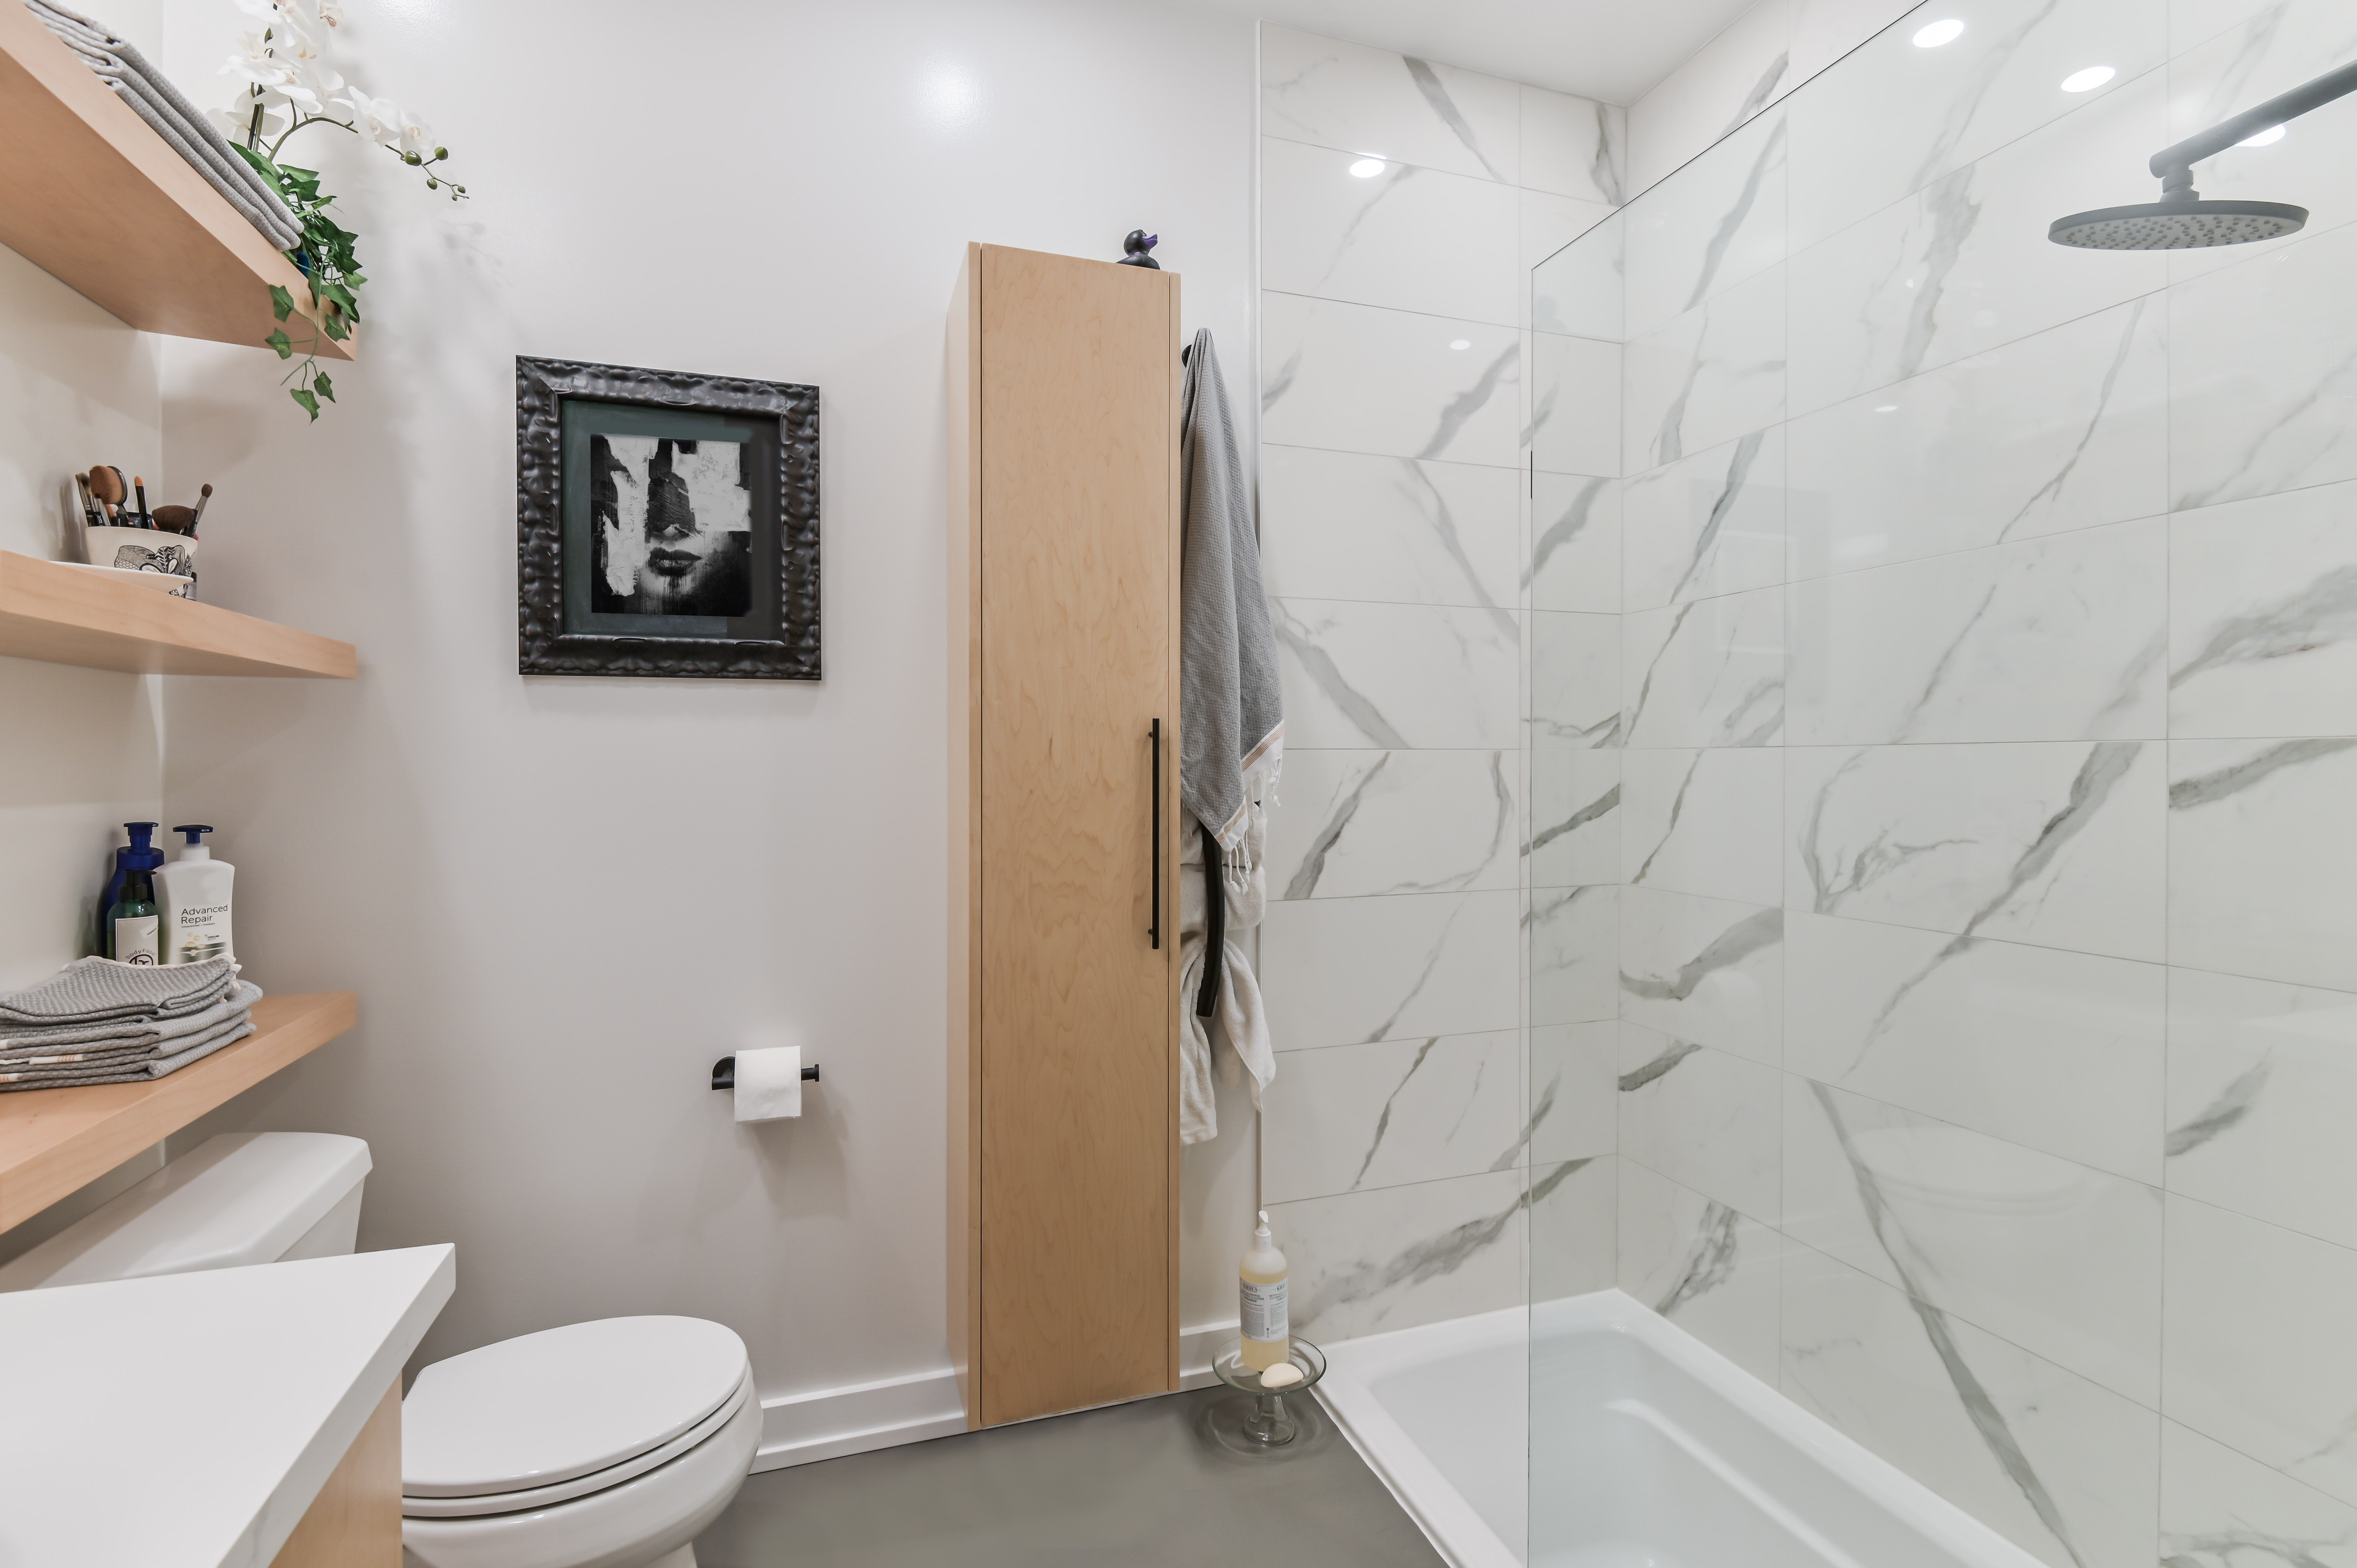 a mix of faux marbletilesand microcement,blendingbeautifullywith the rest of the new bathroomdecor